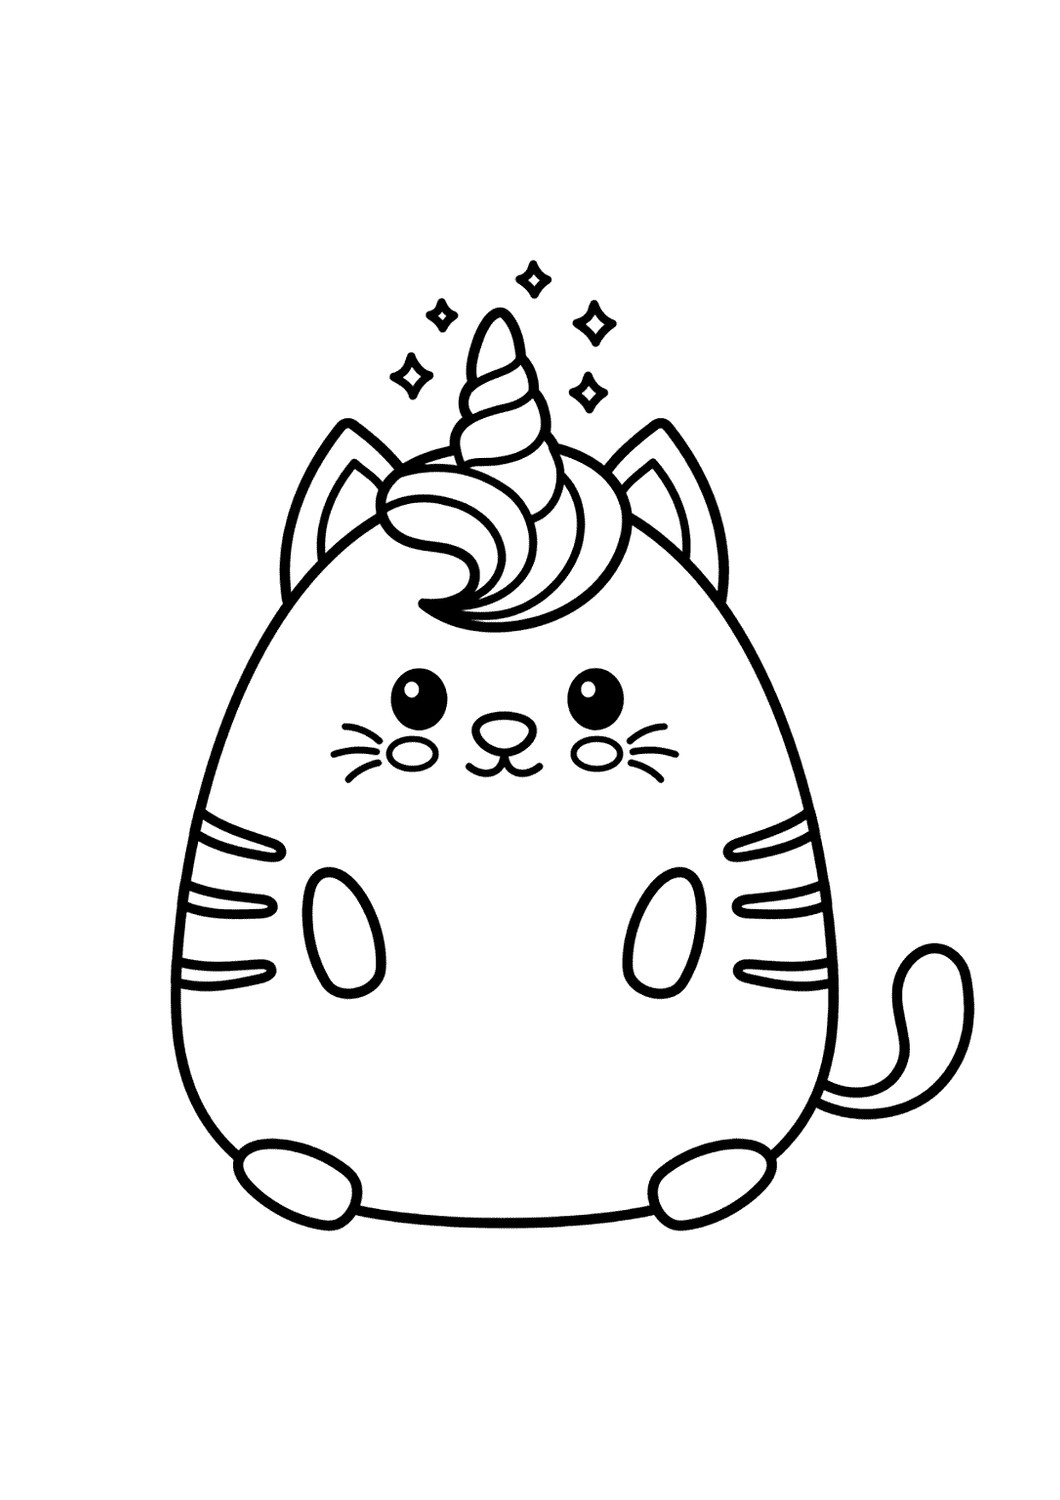 kawaii unicorn cat coloring pages new coloring kittens unicorns coloring pages kids coloring coloring kawaii unicorn pages cat